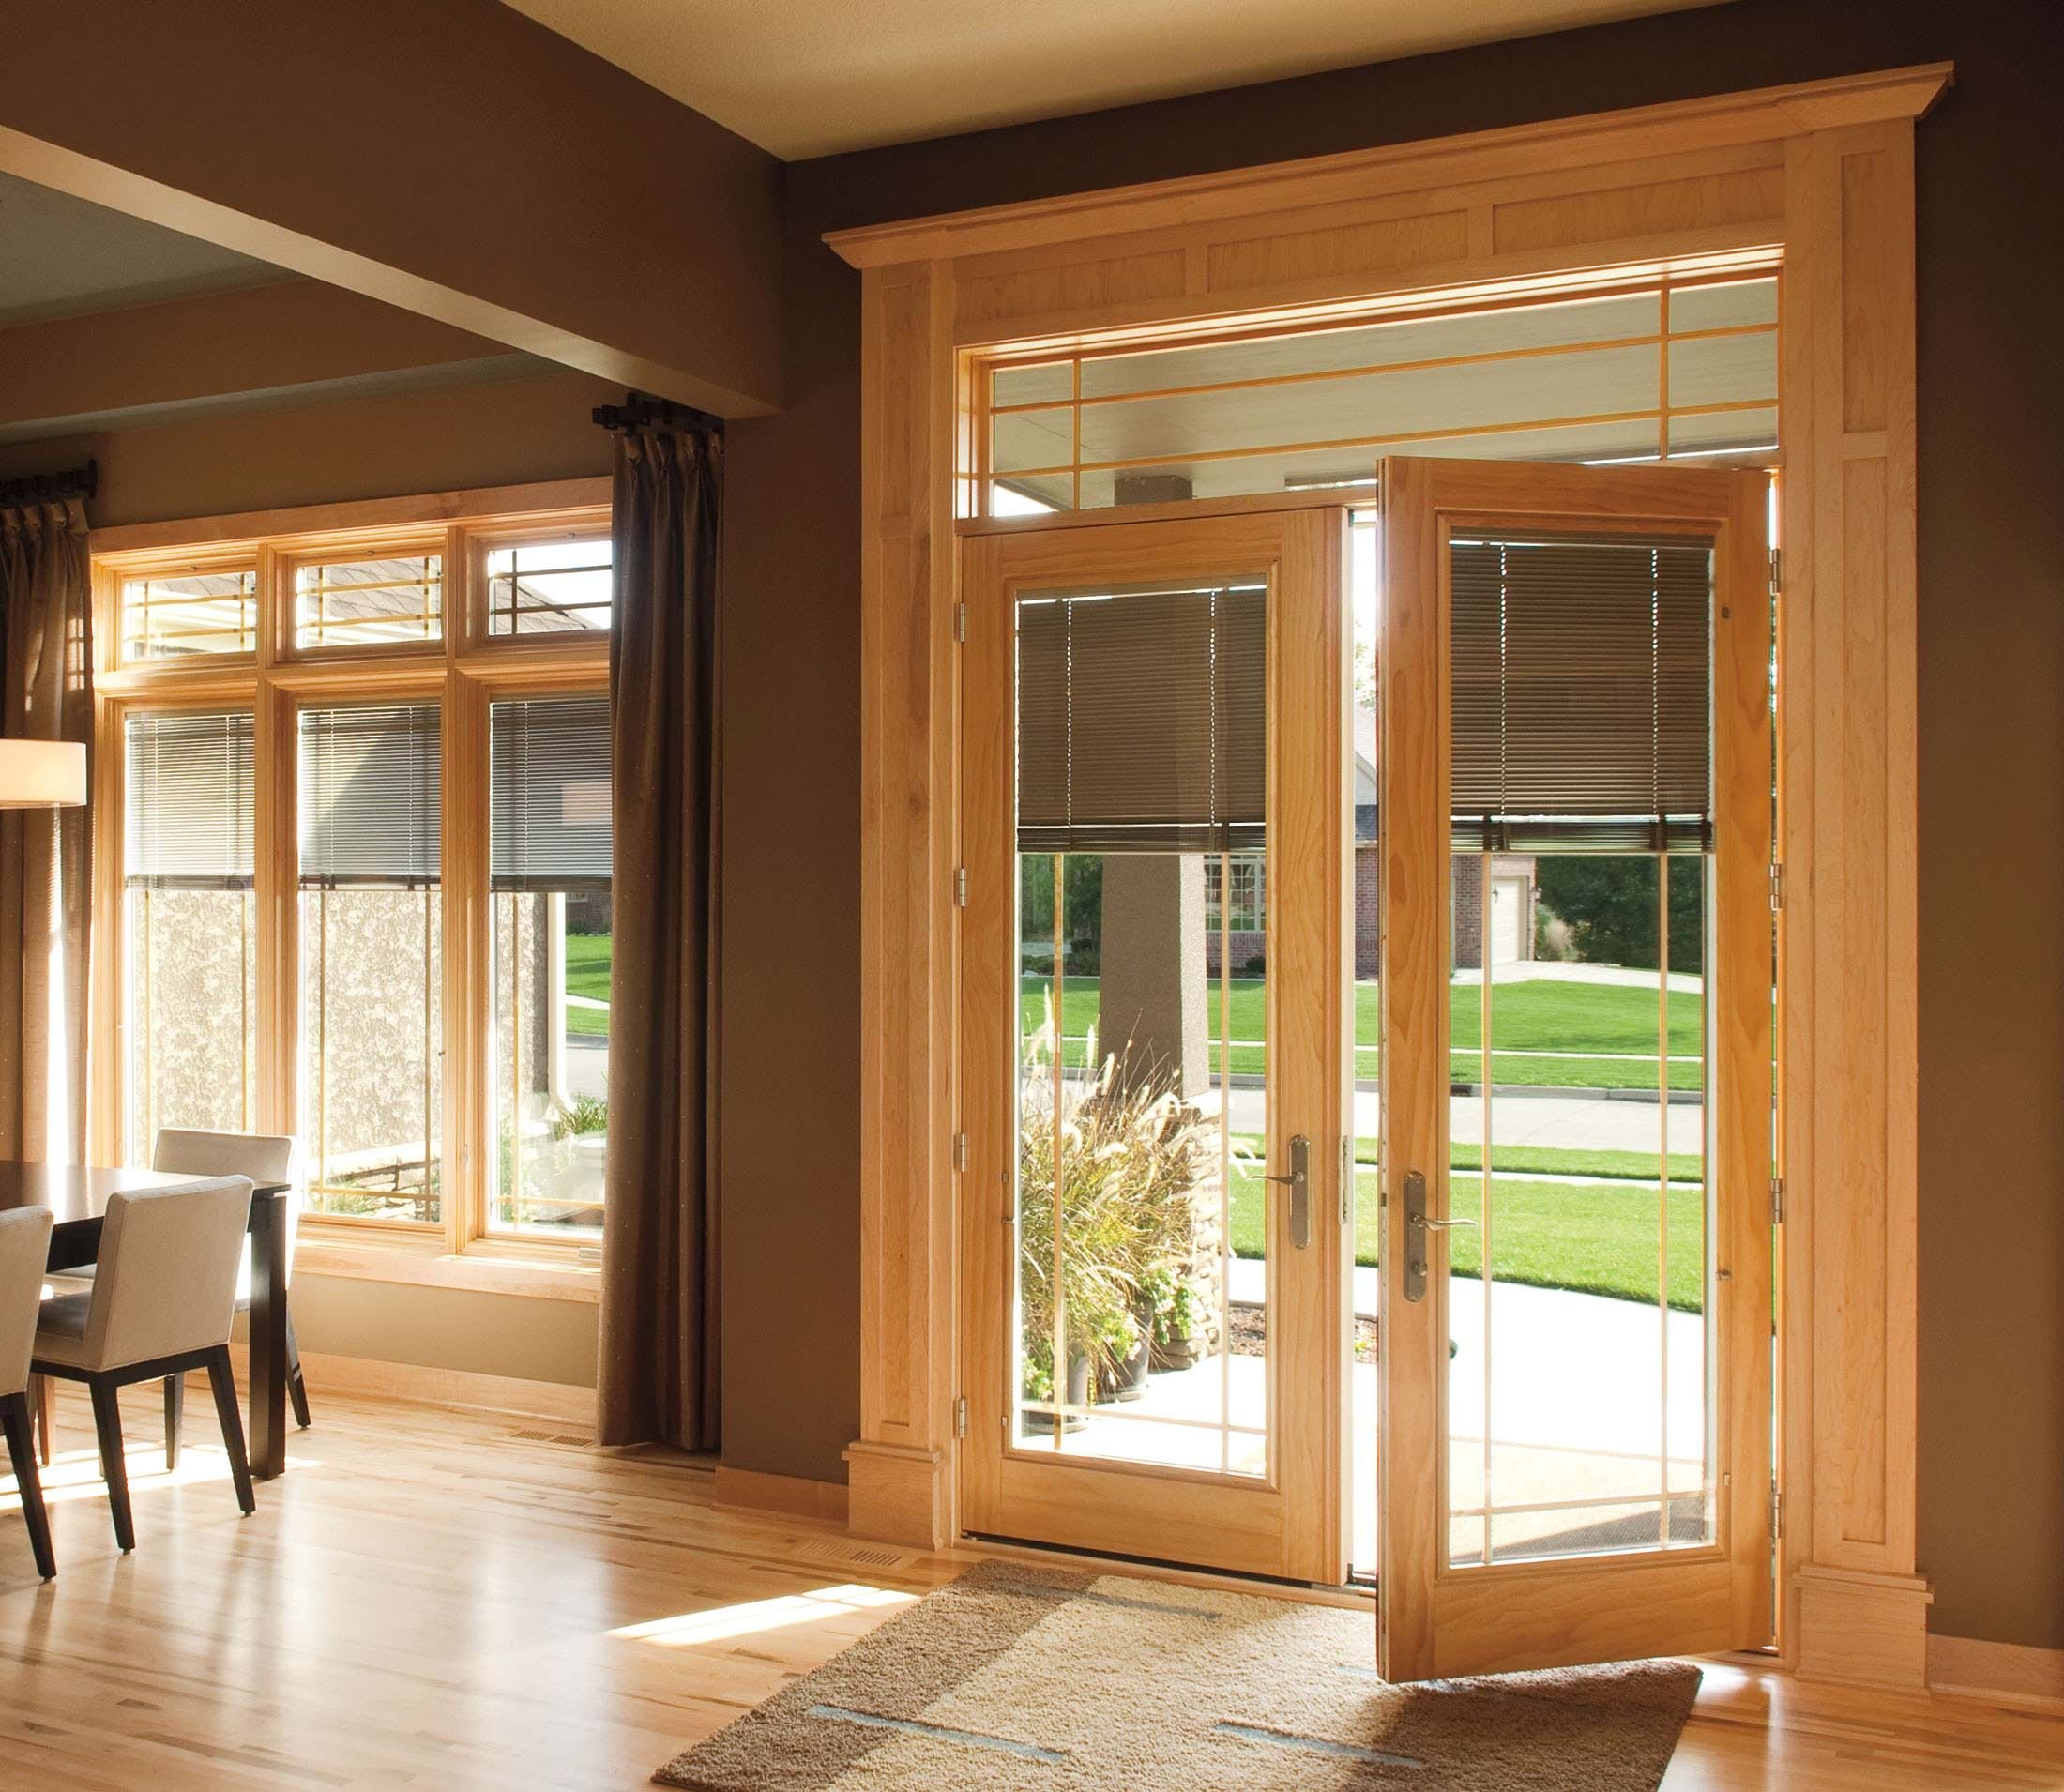 Pella Designer Series Hinged Patio Doors Offer Innovative Between The Glass  Blinds, Shades